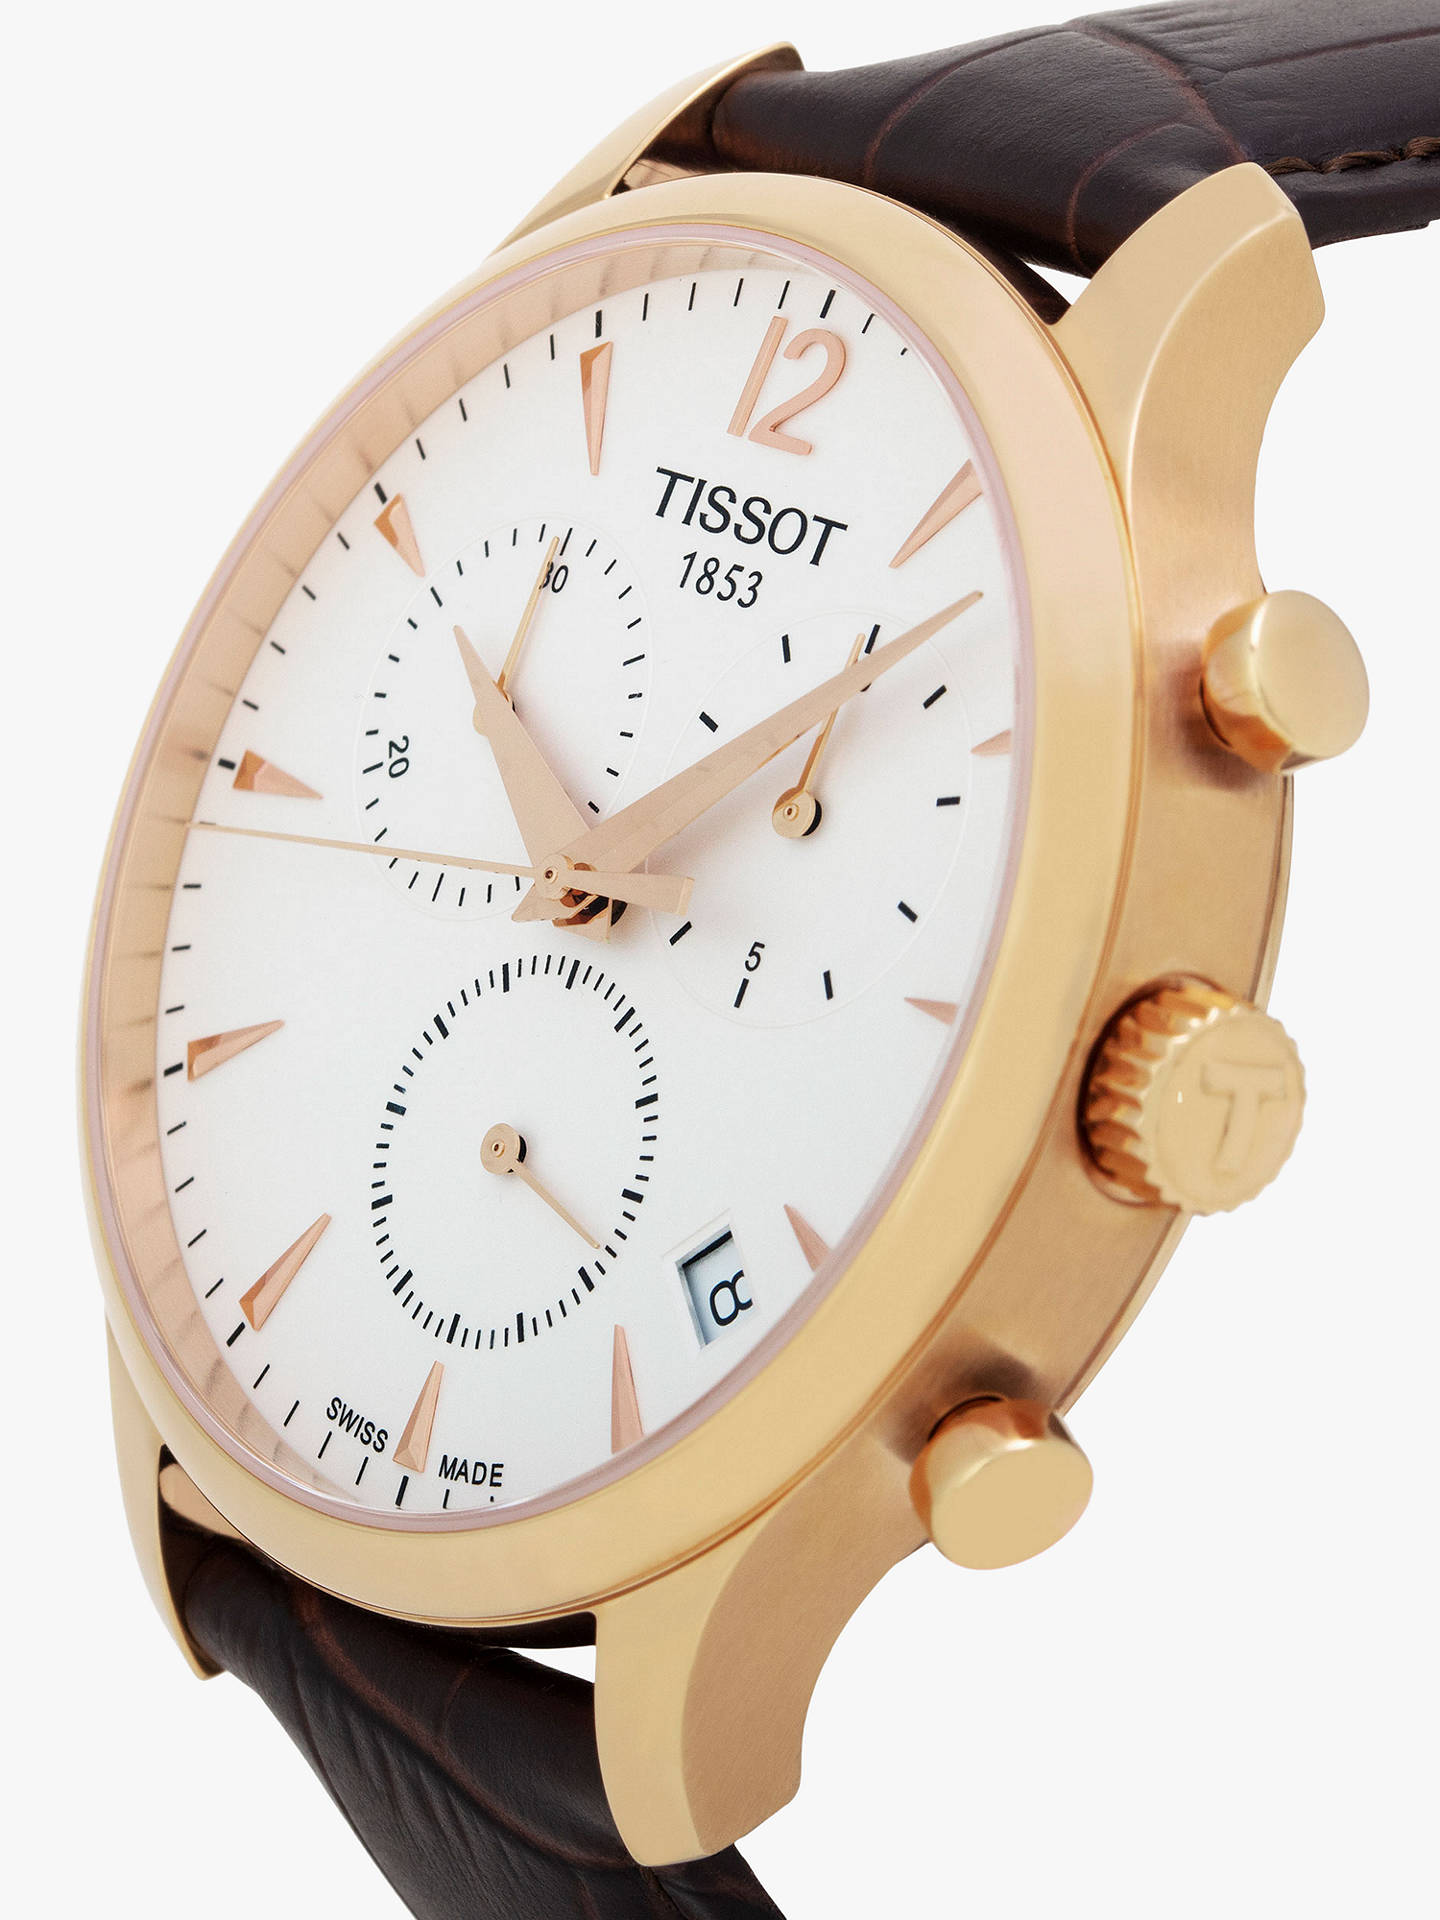 93bcca9db ... Buy Tissot T0636173603700 Men's Tradition Chronograph Date Leather  Strap Watch, Brown/White Online at ...